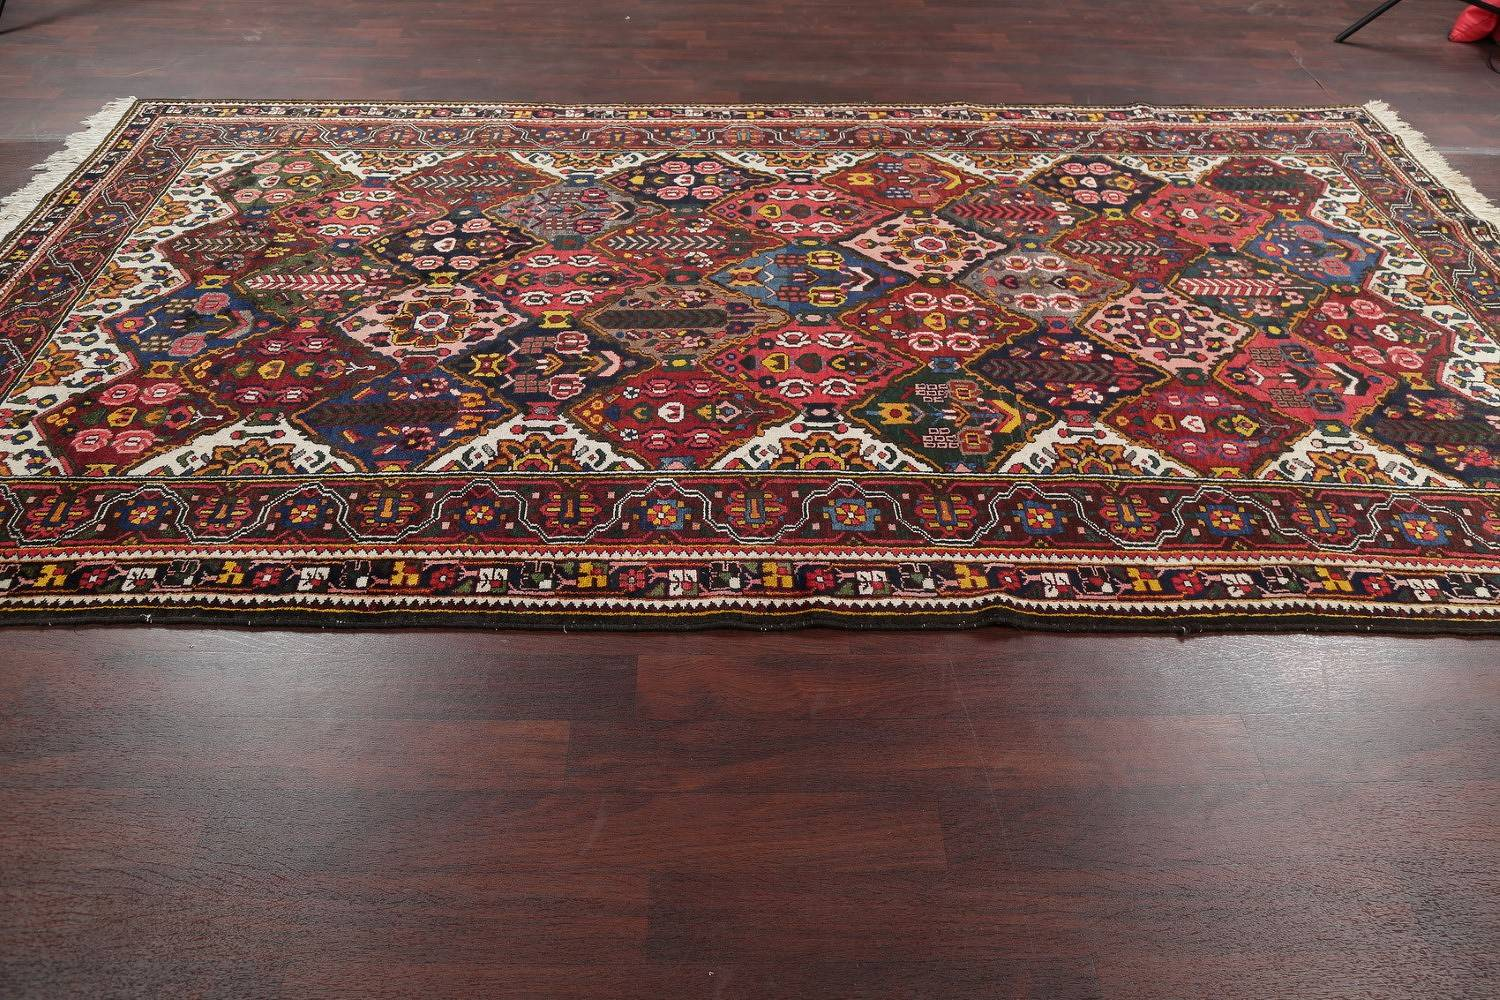 Antique Vegetable Dye Bakhtiari Persian Hand-Knotted Area Rug 7x12 image 15